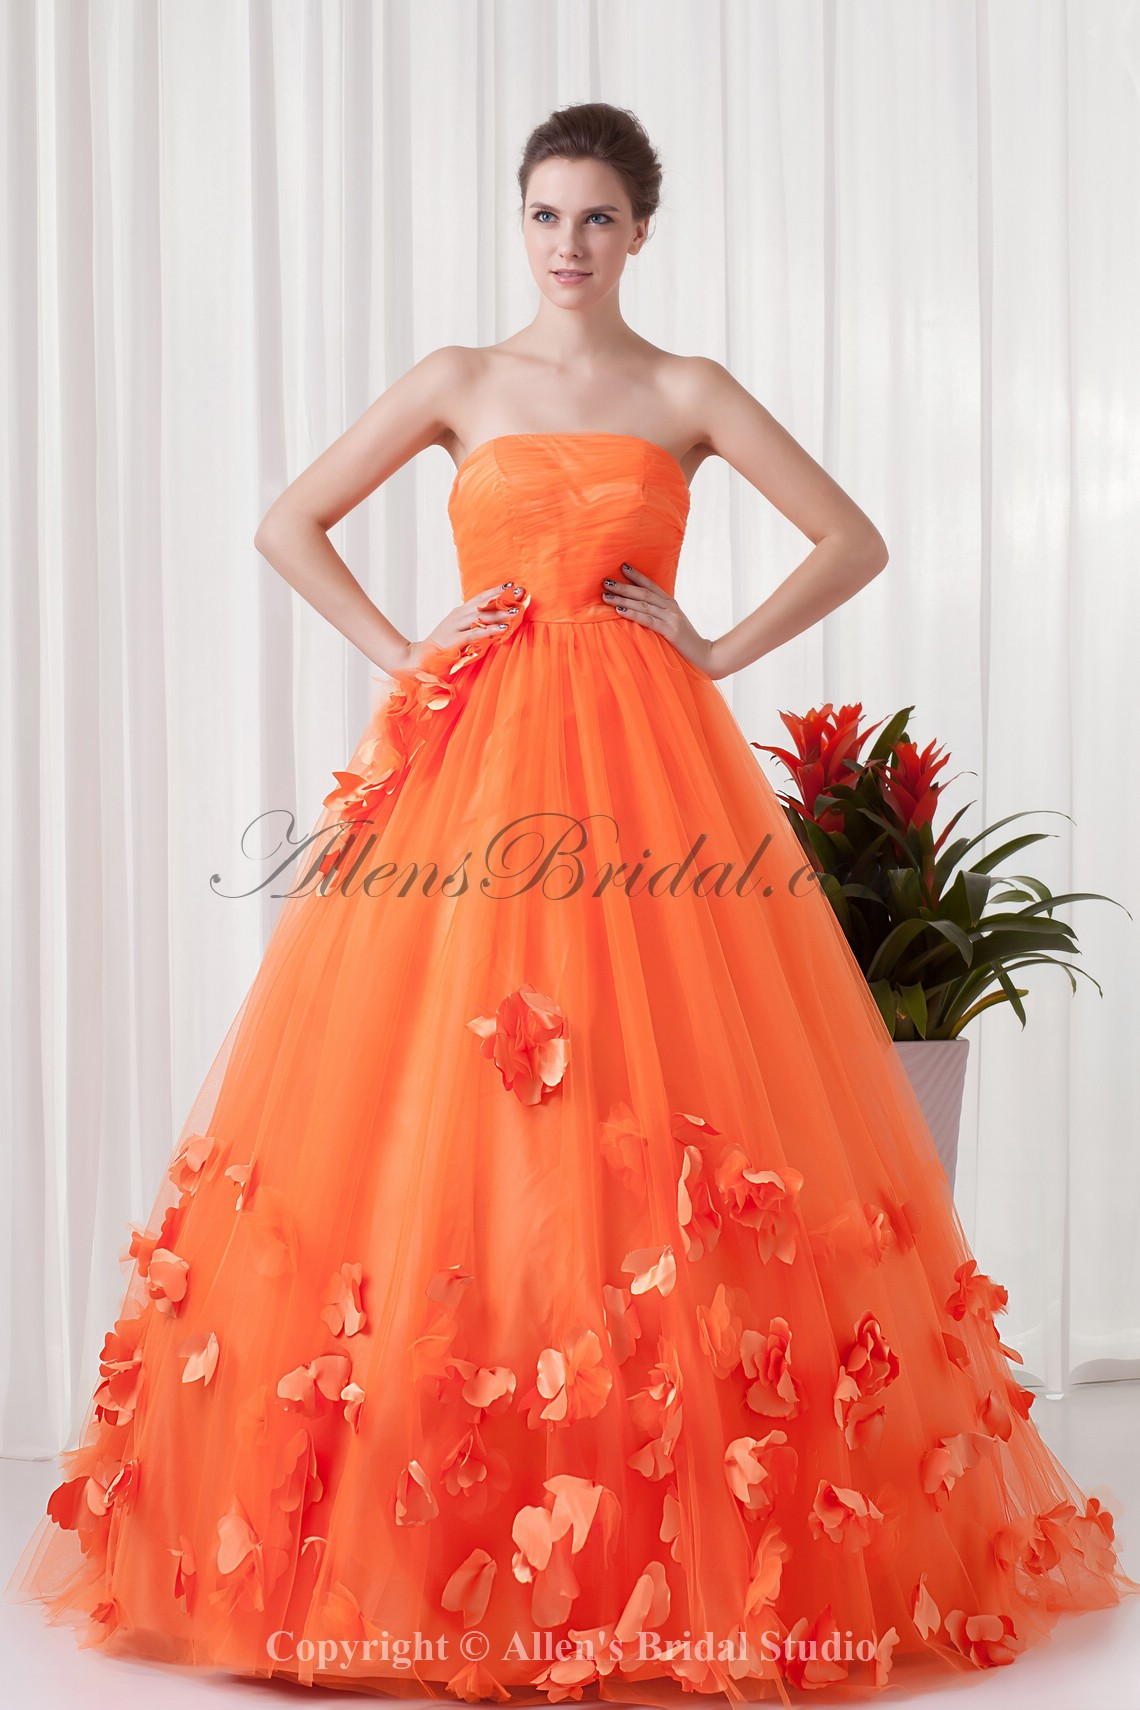 /311-2483/satin-and-net-strapless-ball-gown-floor-length-applique-prom-dress.jpg